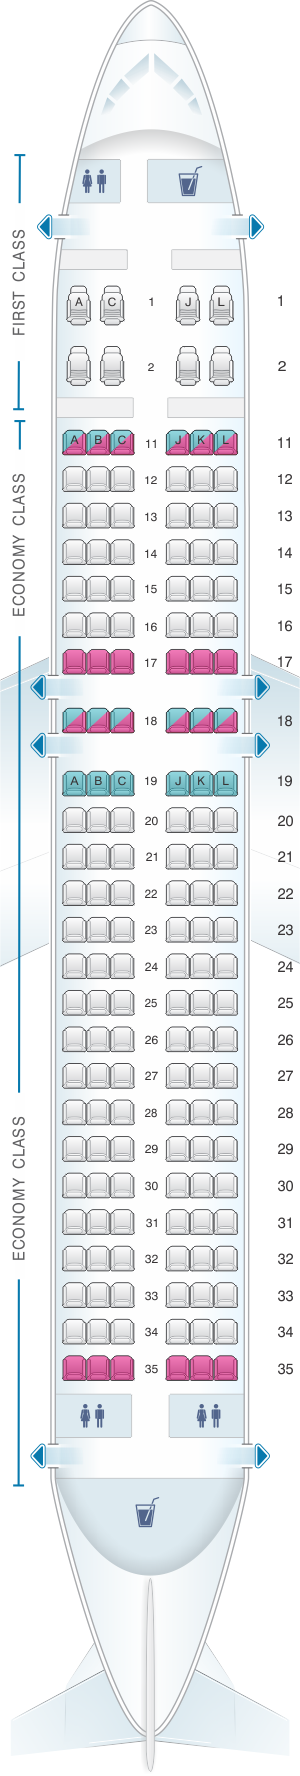 Seat Map Air China Airbus A320 200 Spirit Airlines China Eastern Airlines Kingfisher Airlines